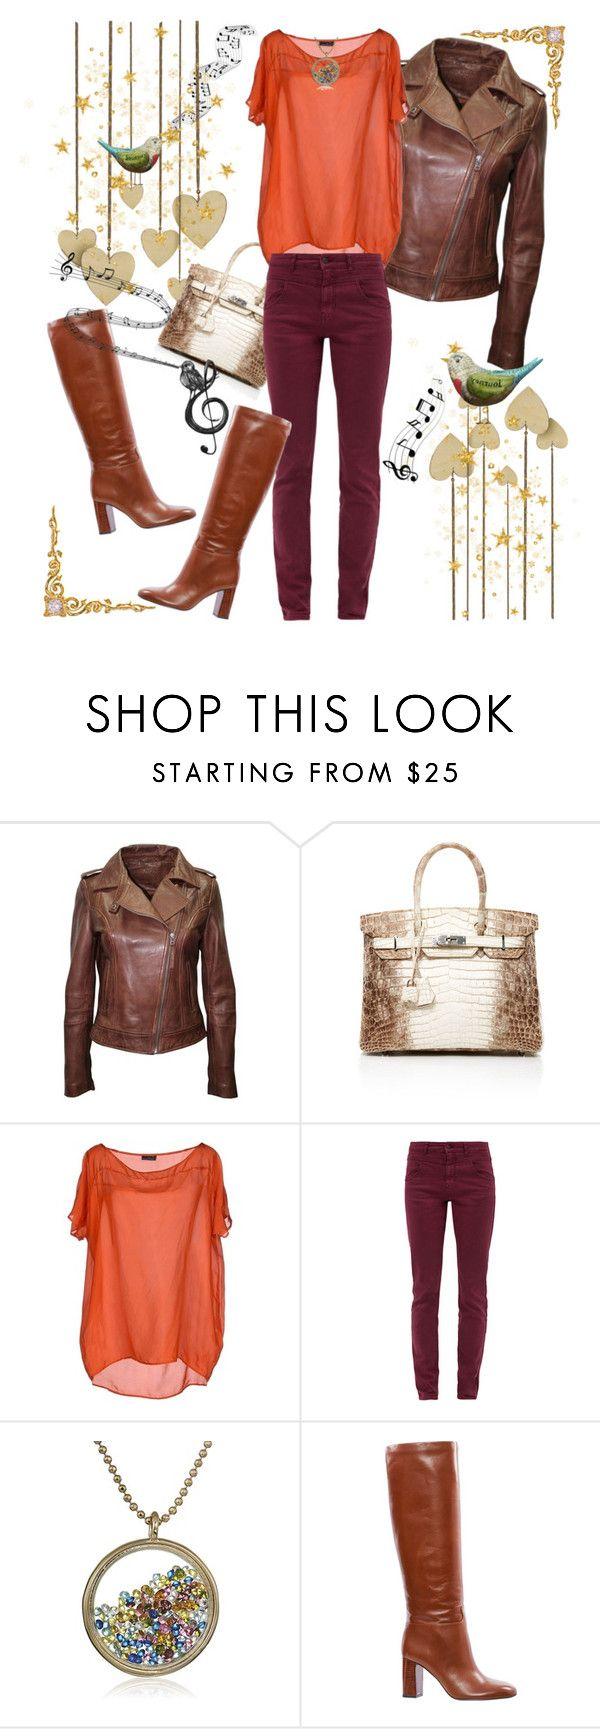 """""""In Harmony"""" by april-wilson-nolen ❤ liked on Polyvore featuring Hermès, Fred Perry, Betsey Johnson and Tory Burch"""